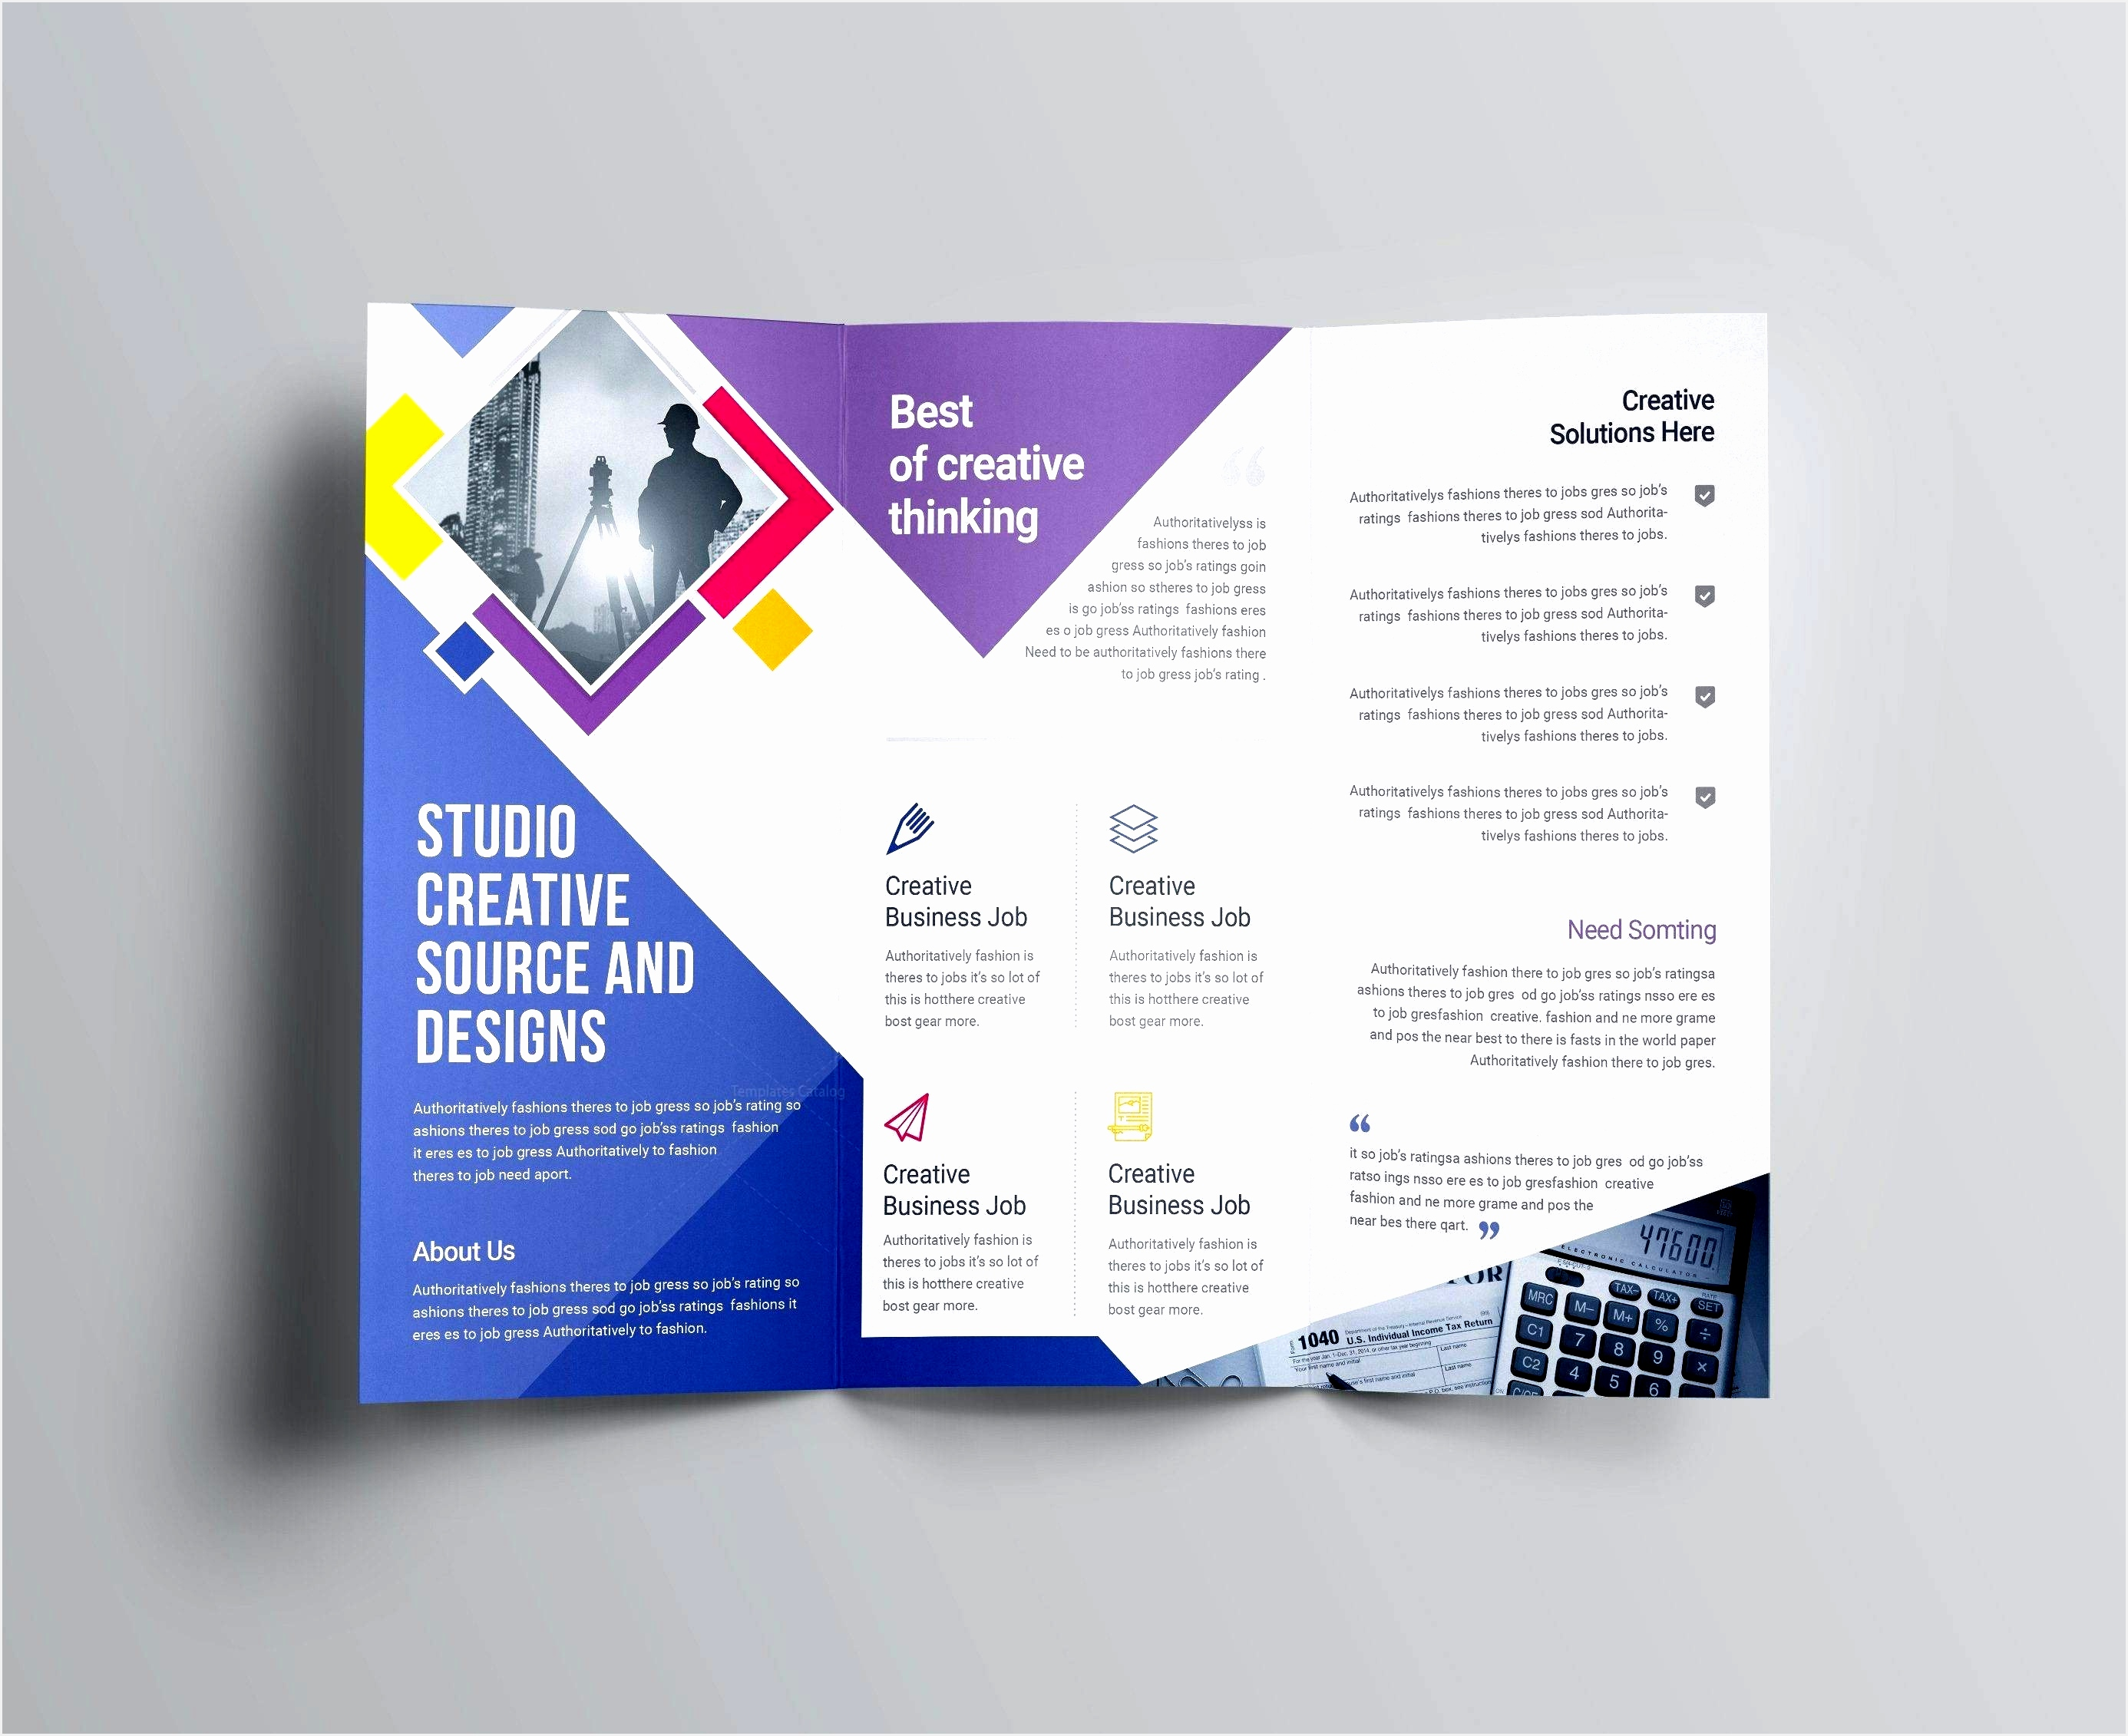 12 Luxury iso 9001 Templates Free Download Resume Templates22622772